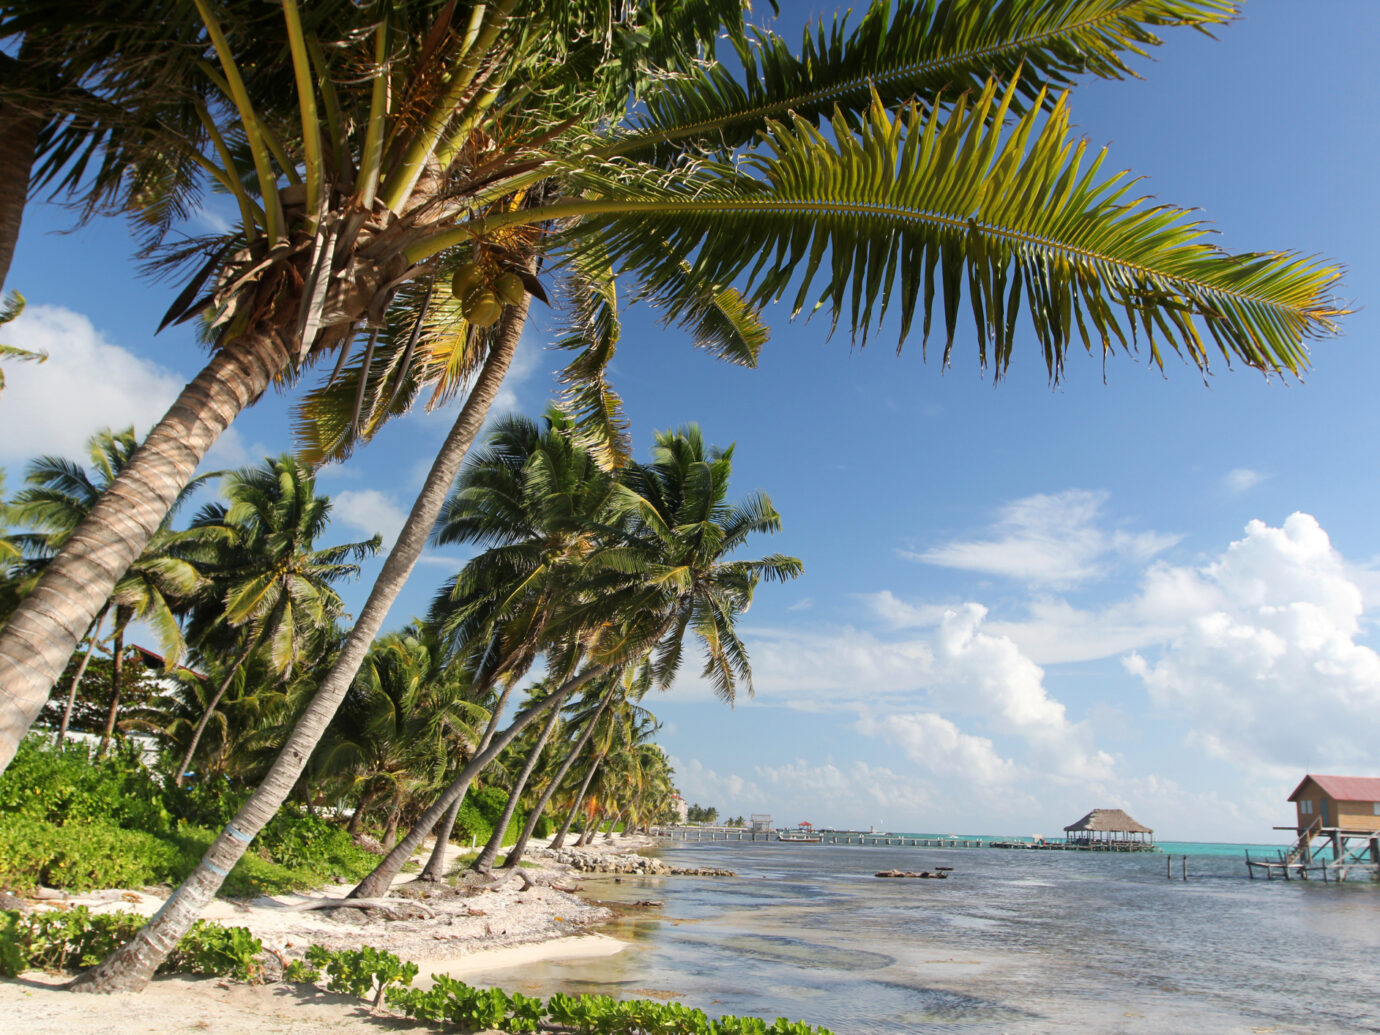 San Pedro of the island of Ambergris Caye in the Belize